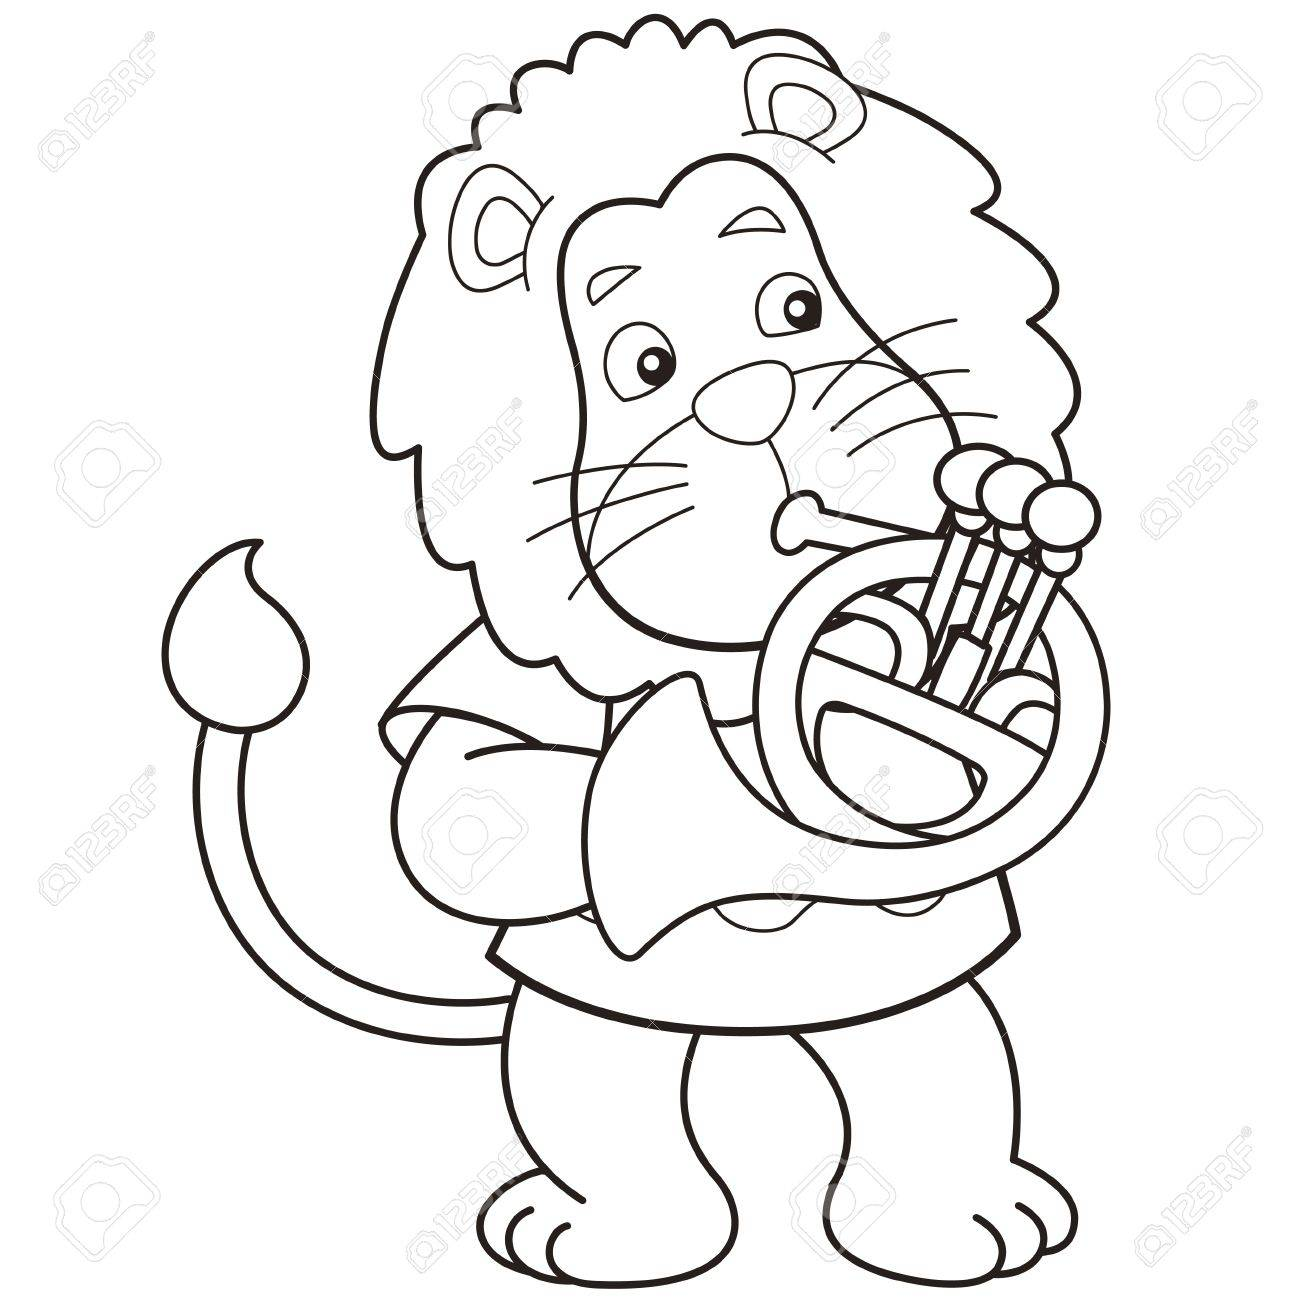 Cartoon lion playing a French horn black and white Stock Vector - 18526771